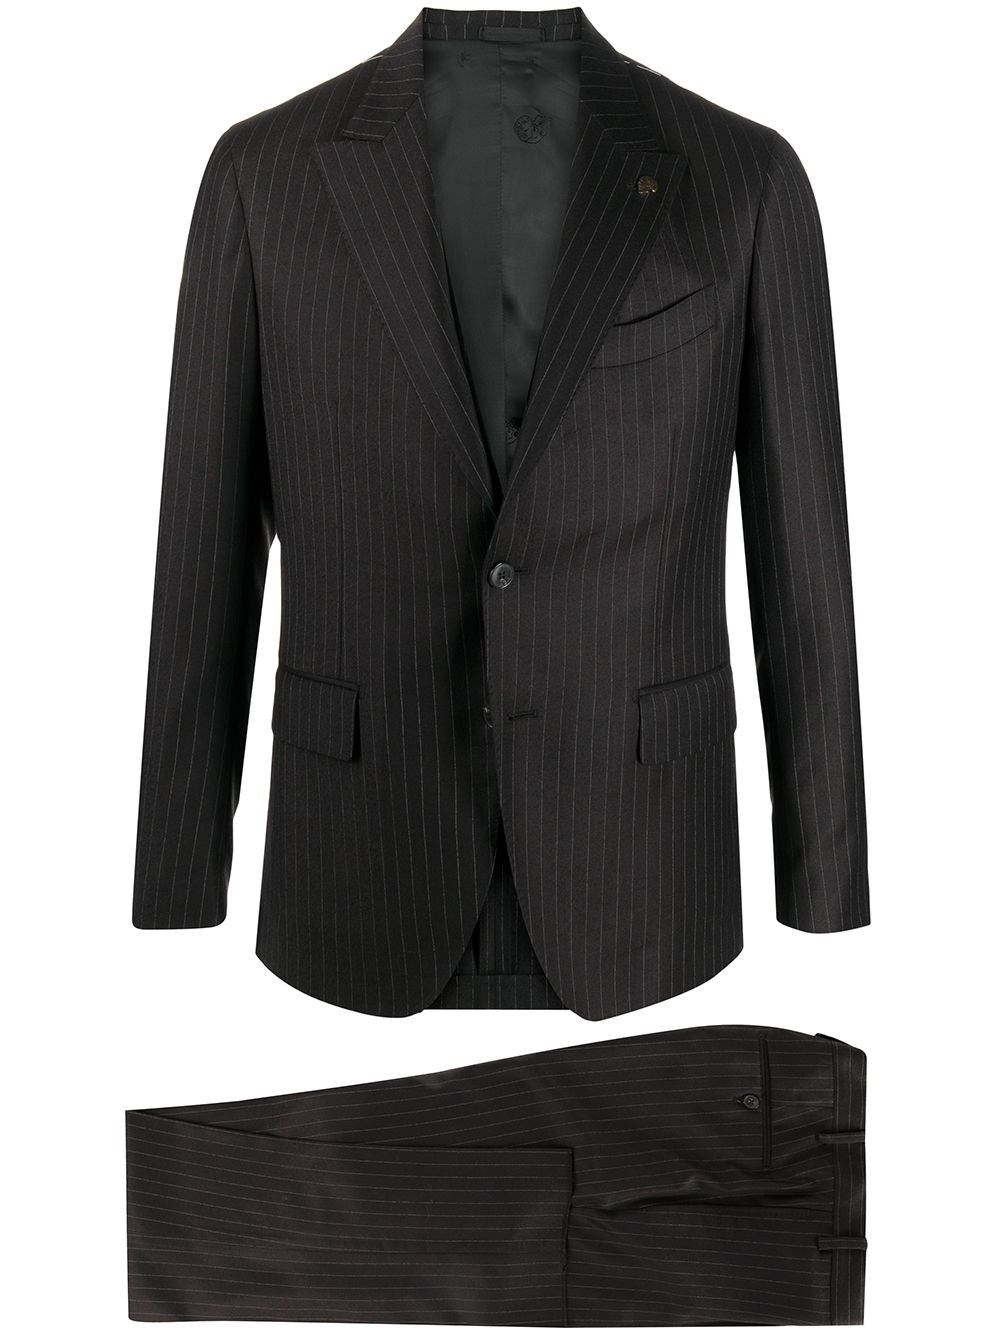 GABRIELE PASINI Single-Breasted Blazer